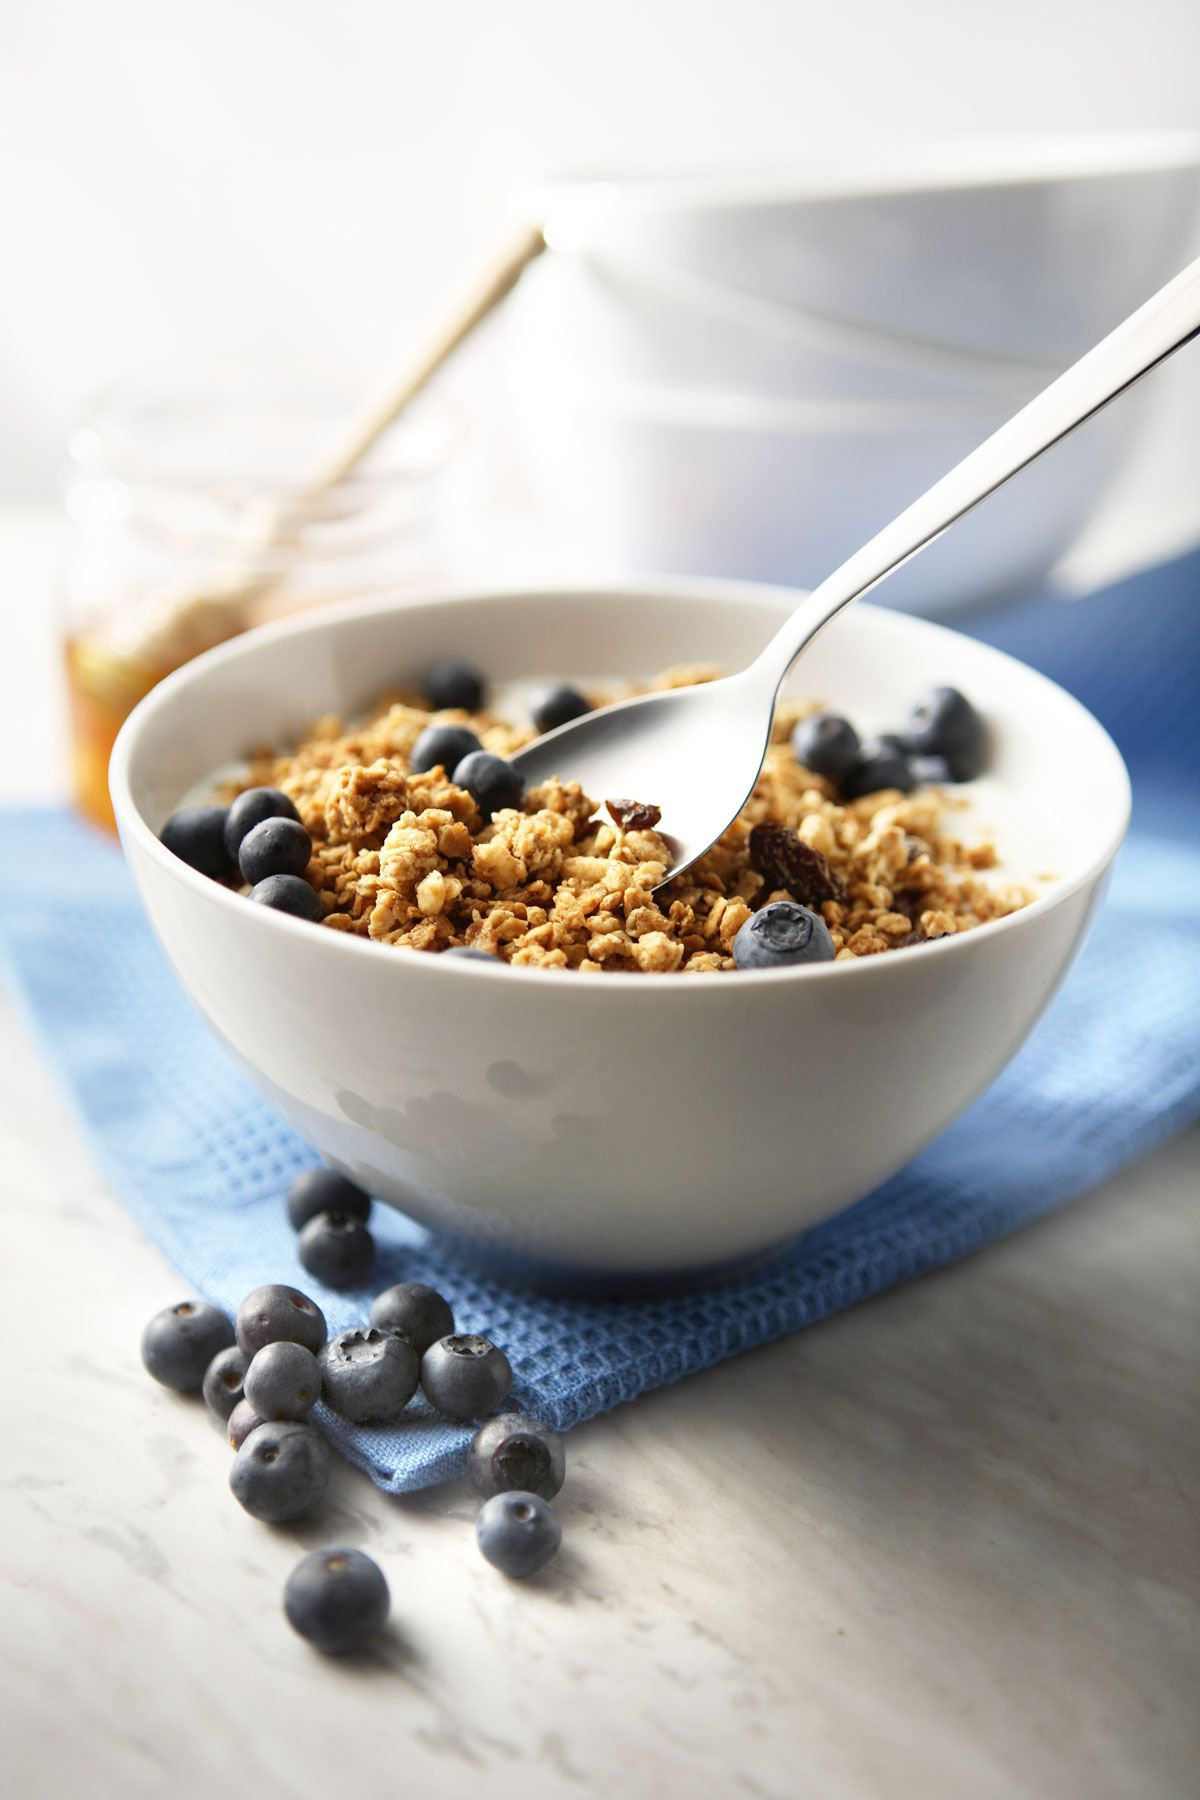 15 Healthy Cereals That Taste Great, Too